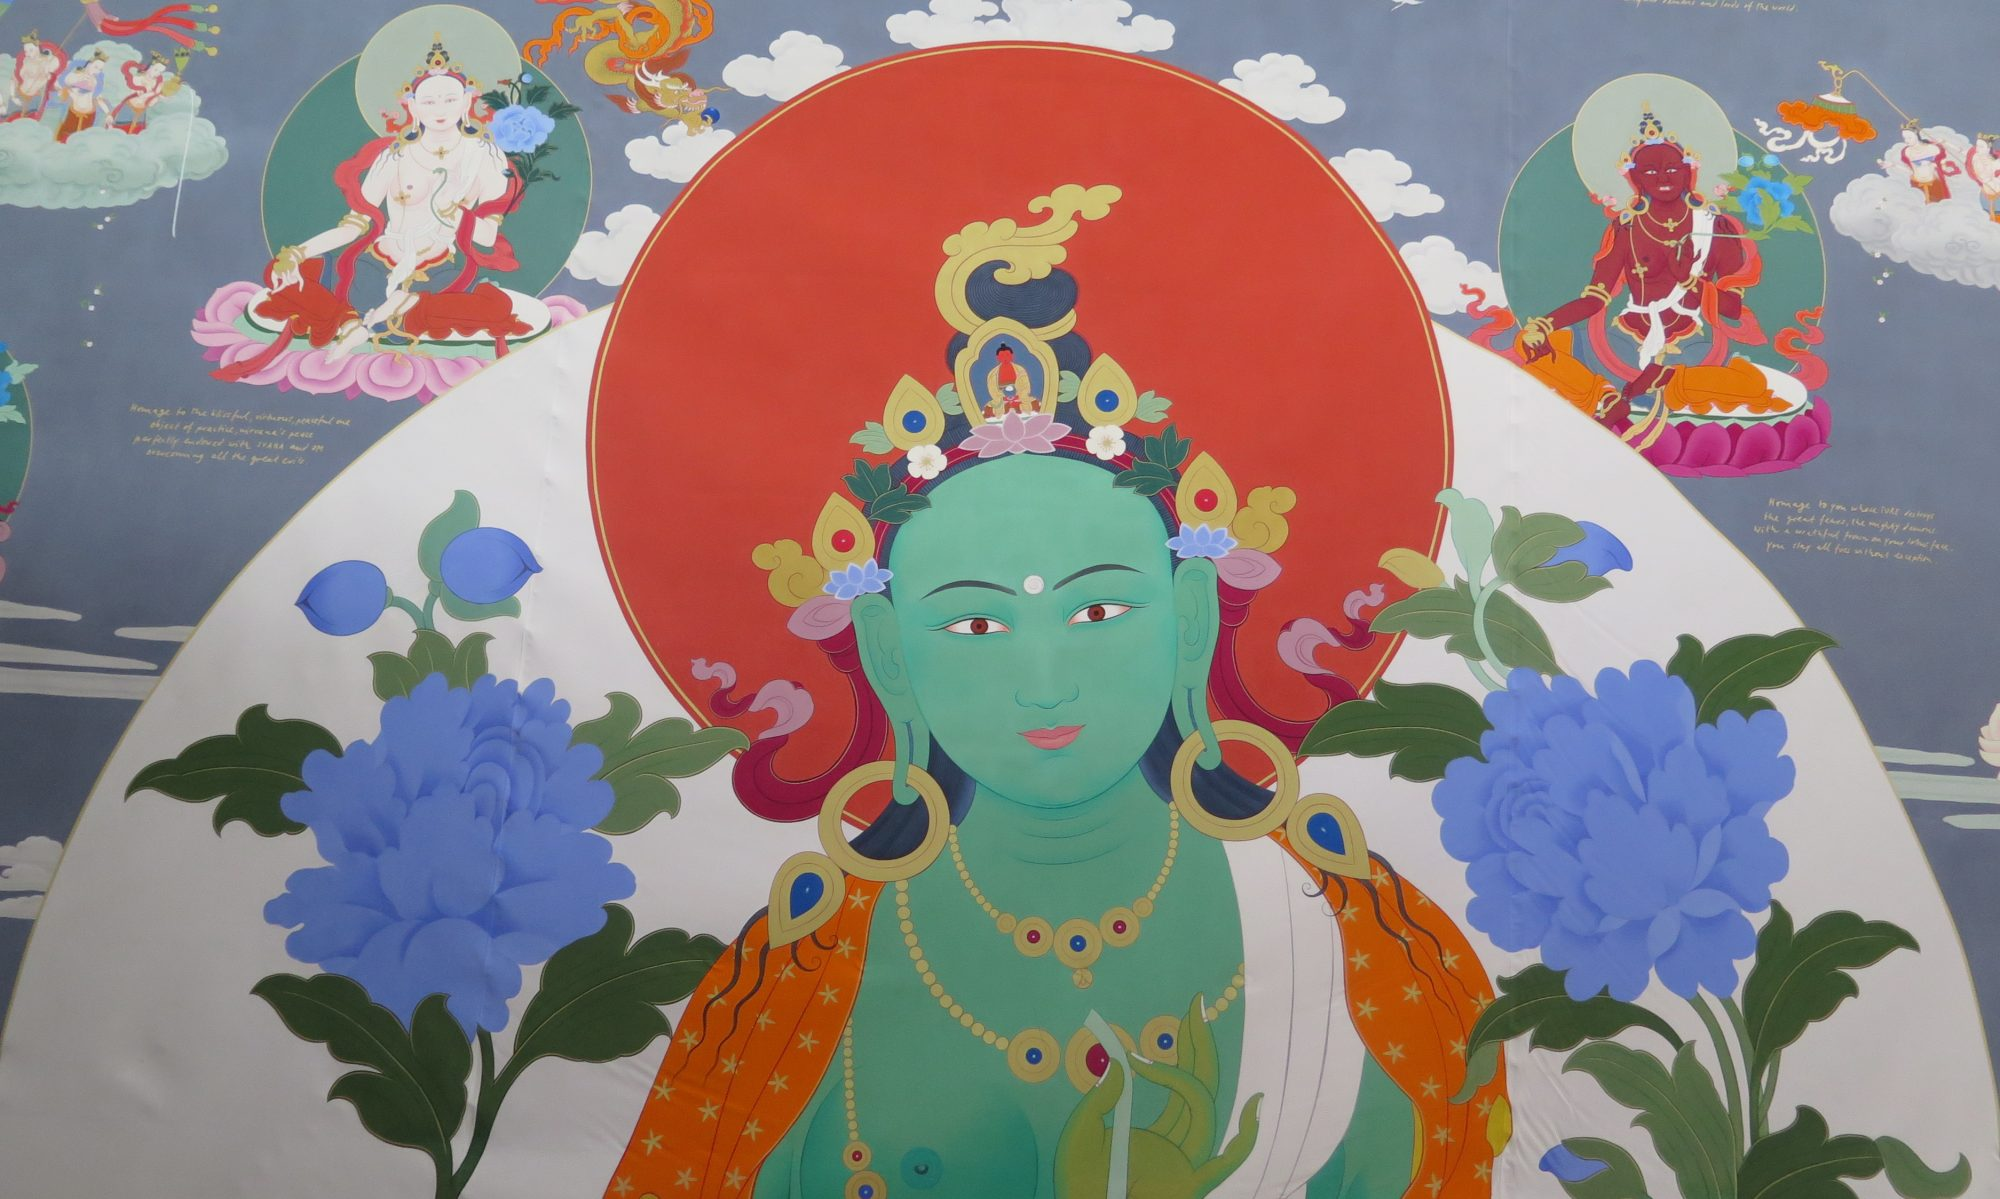 21 Taras Thangka Exhibition